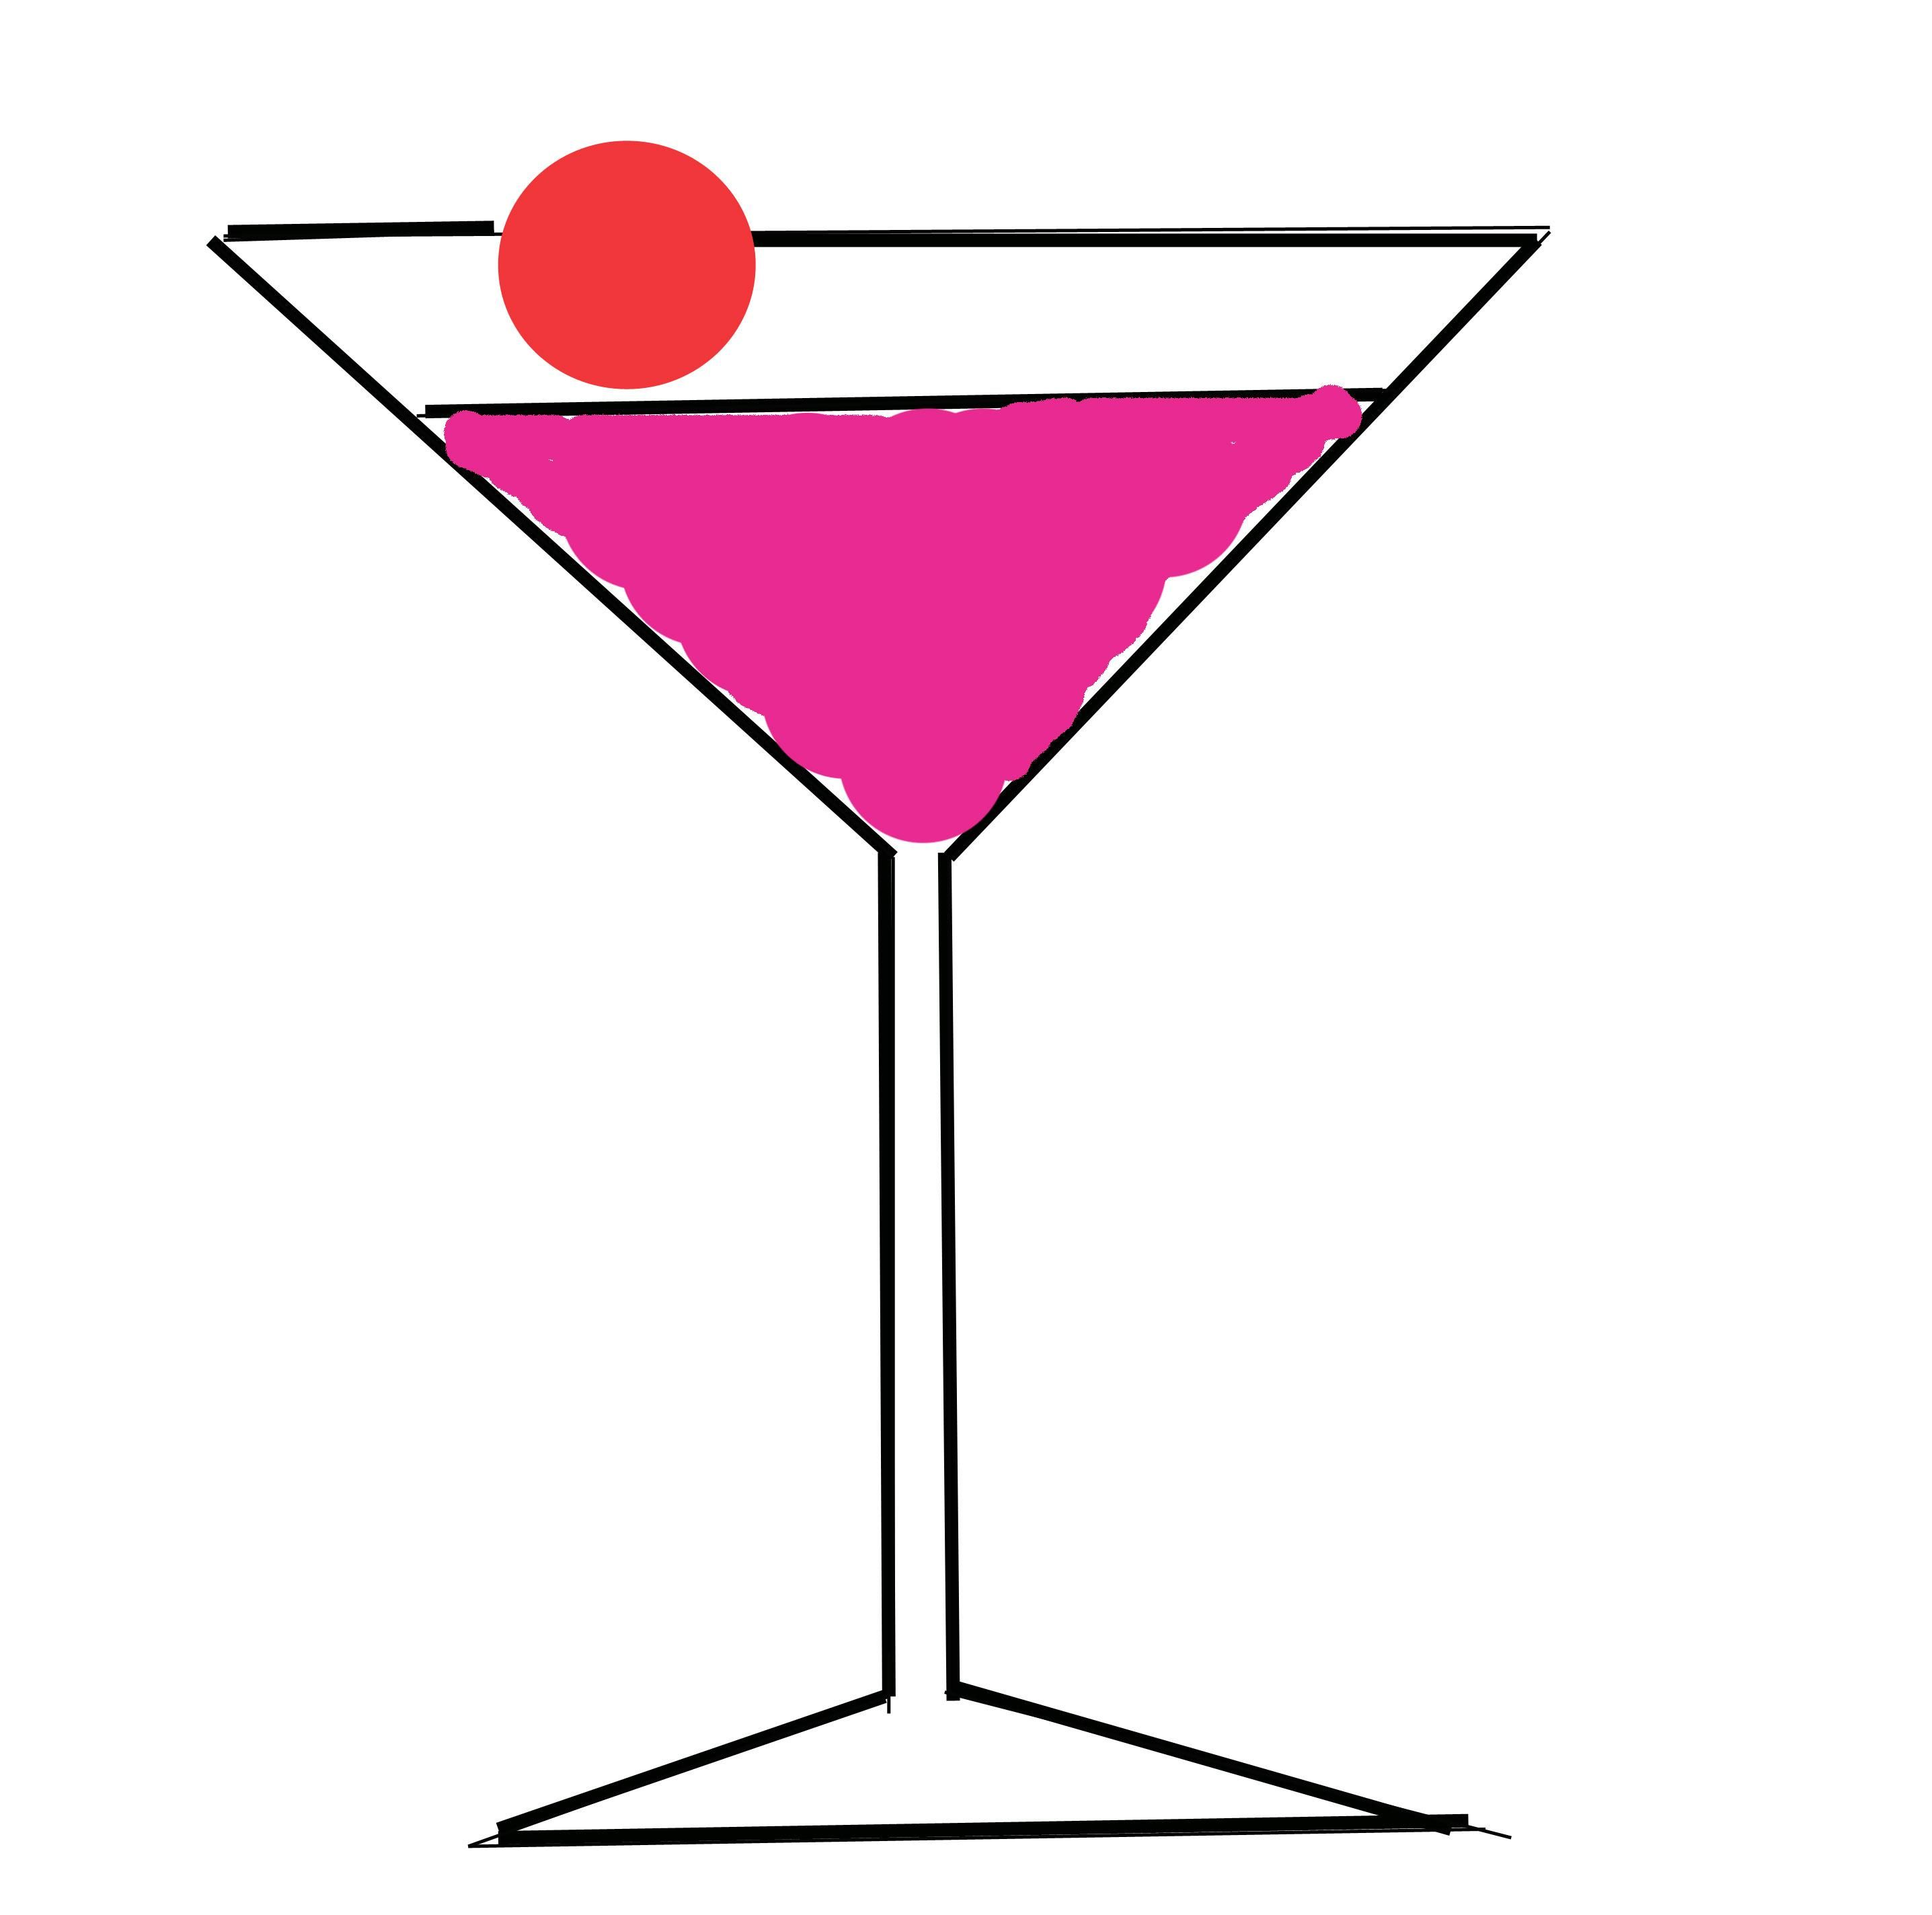 martini glass cocktail glass clip art cocktails pinterest rh pinterest com girl in martini glass clip art martini glass pictures clip art